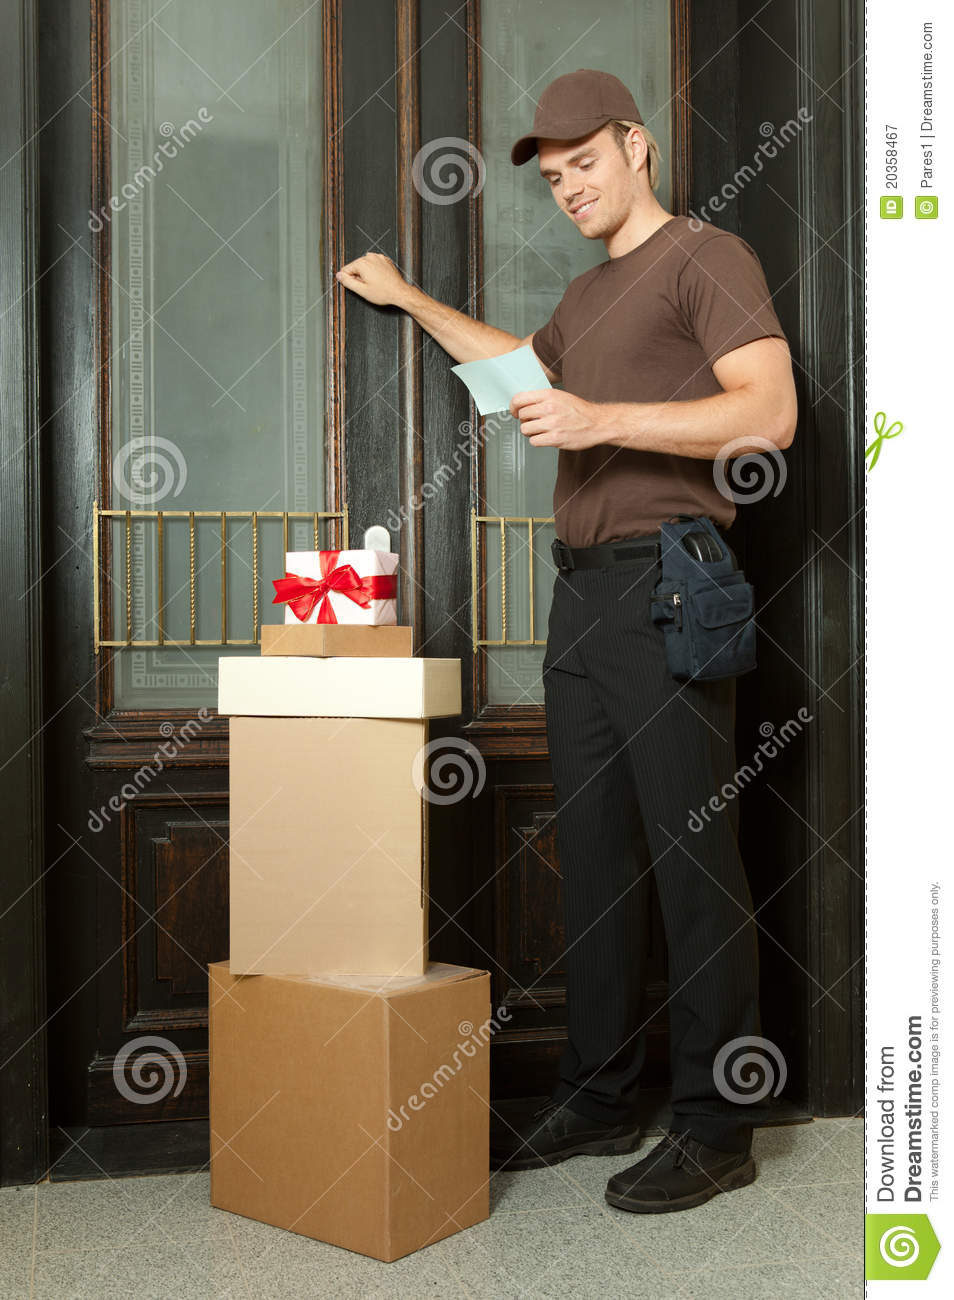 knocking on the door stock image  image of card  delivery